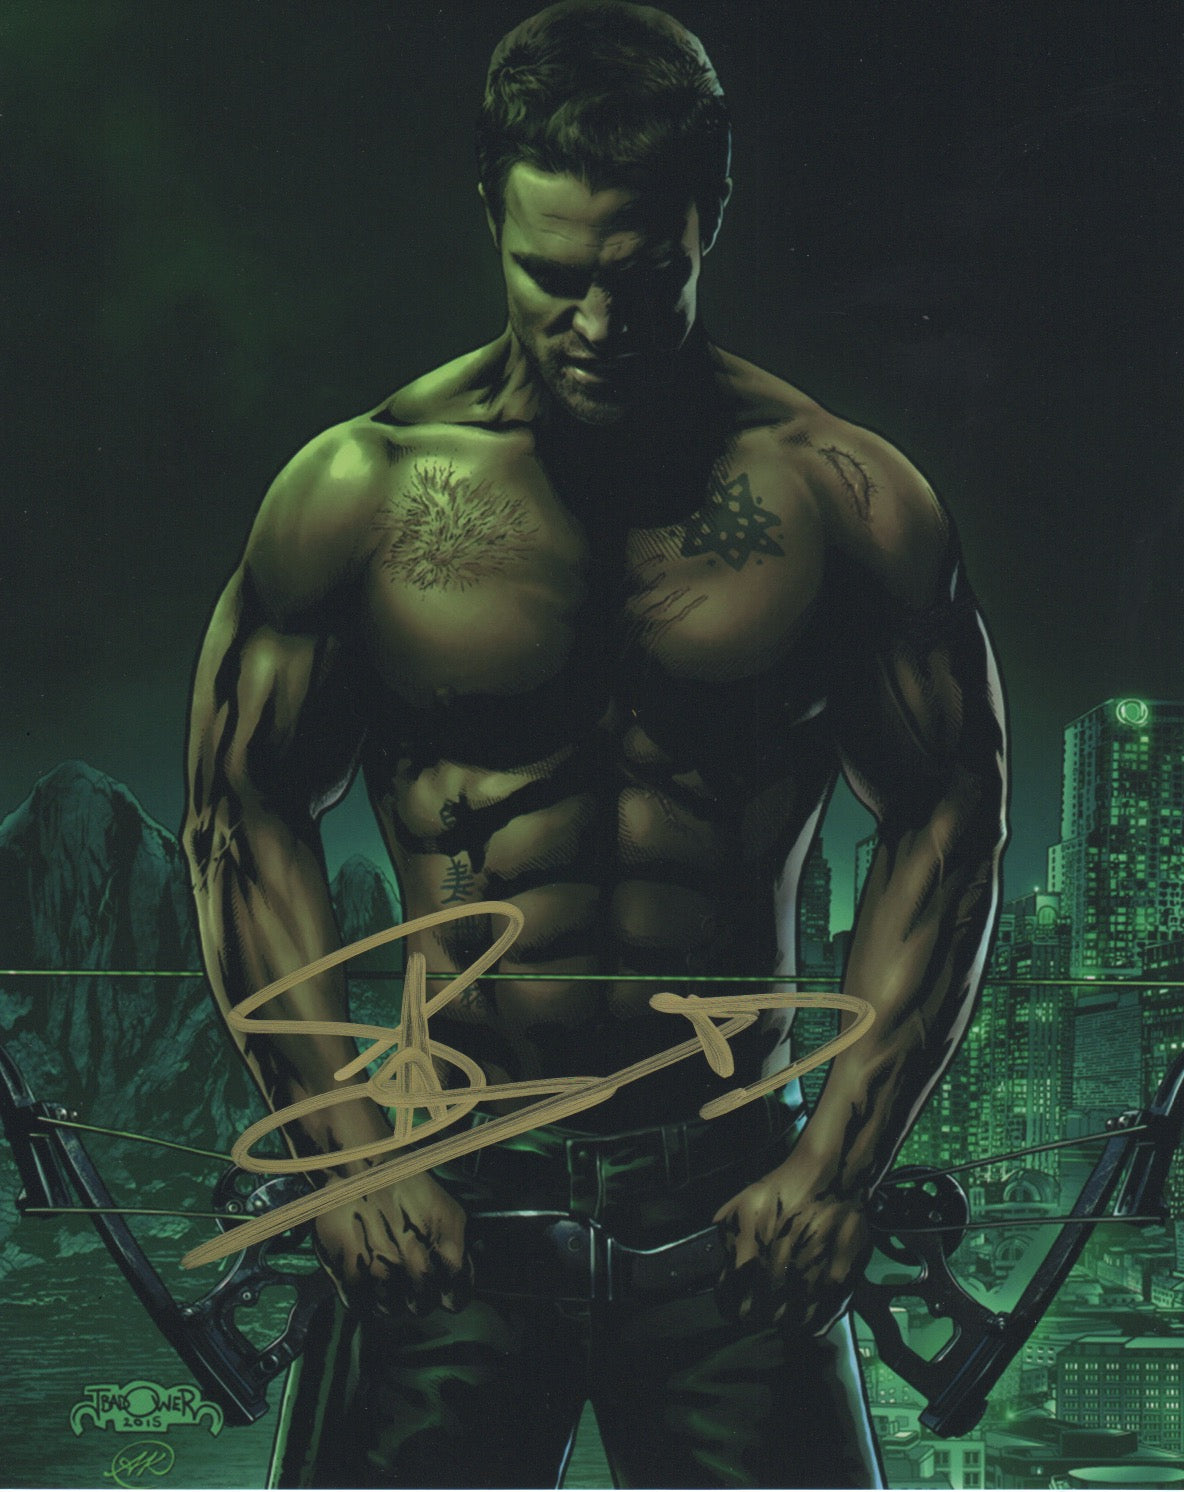 Stephen Amell Arrow Autograph Signed 8x10 Photo #13 - Outlaw Hobbies Authentic Autographs